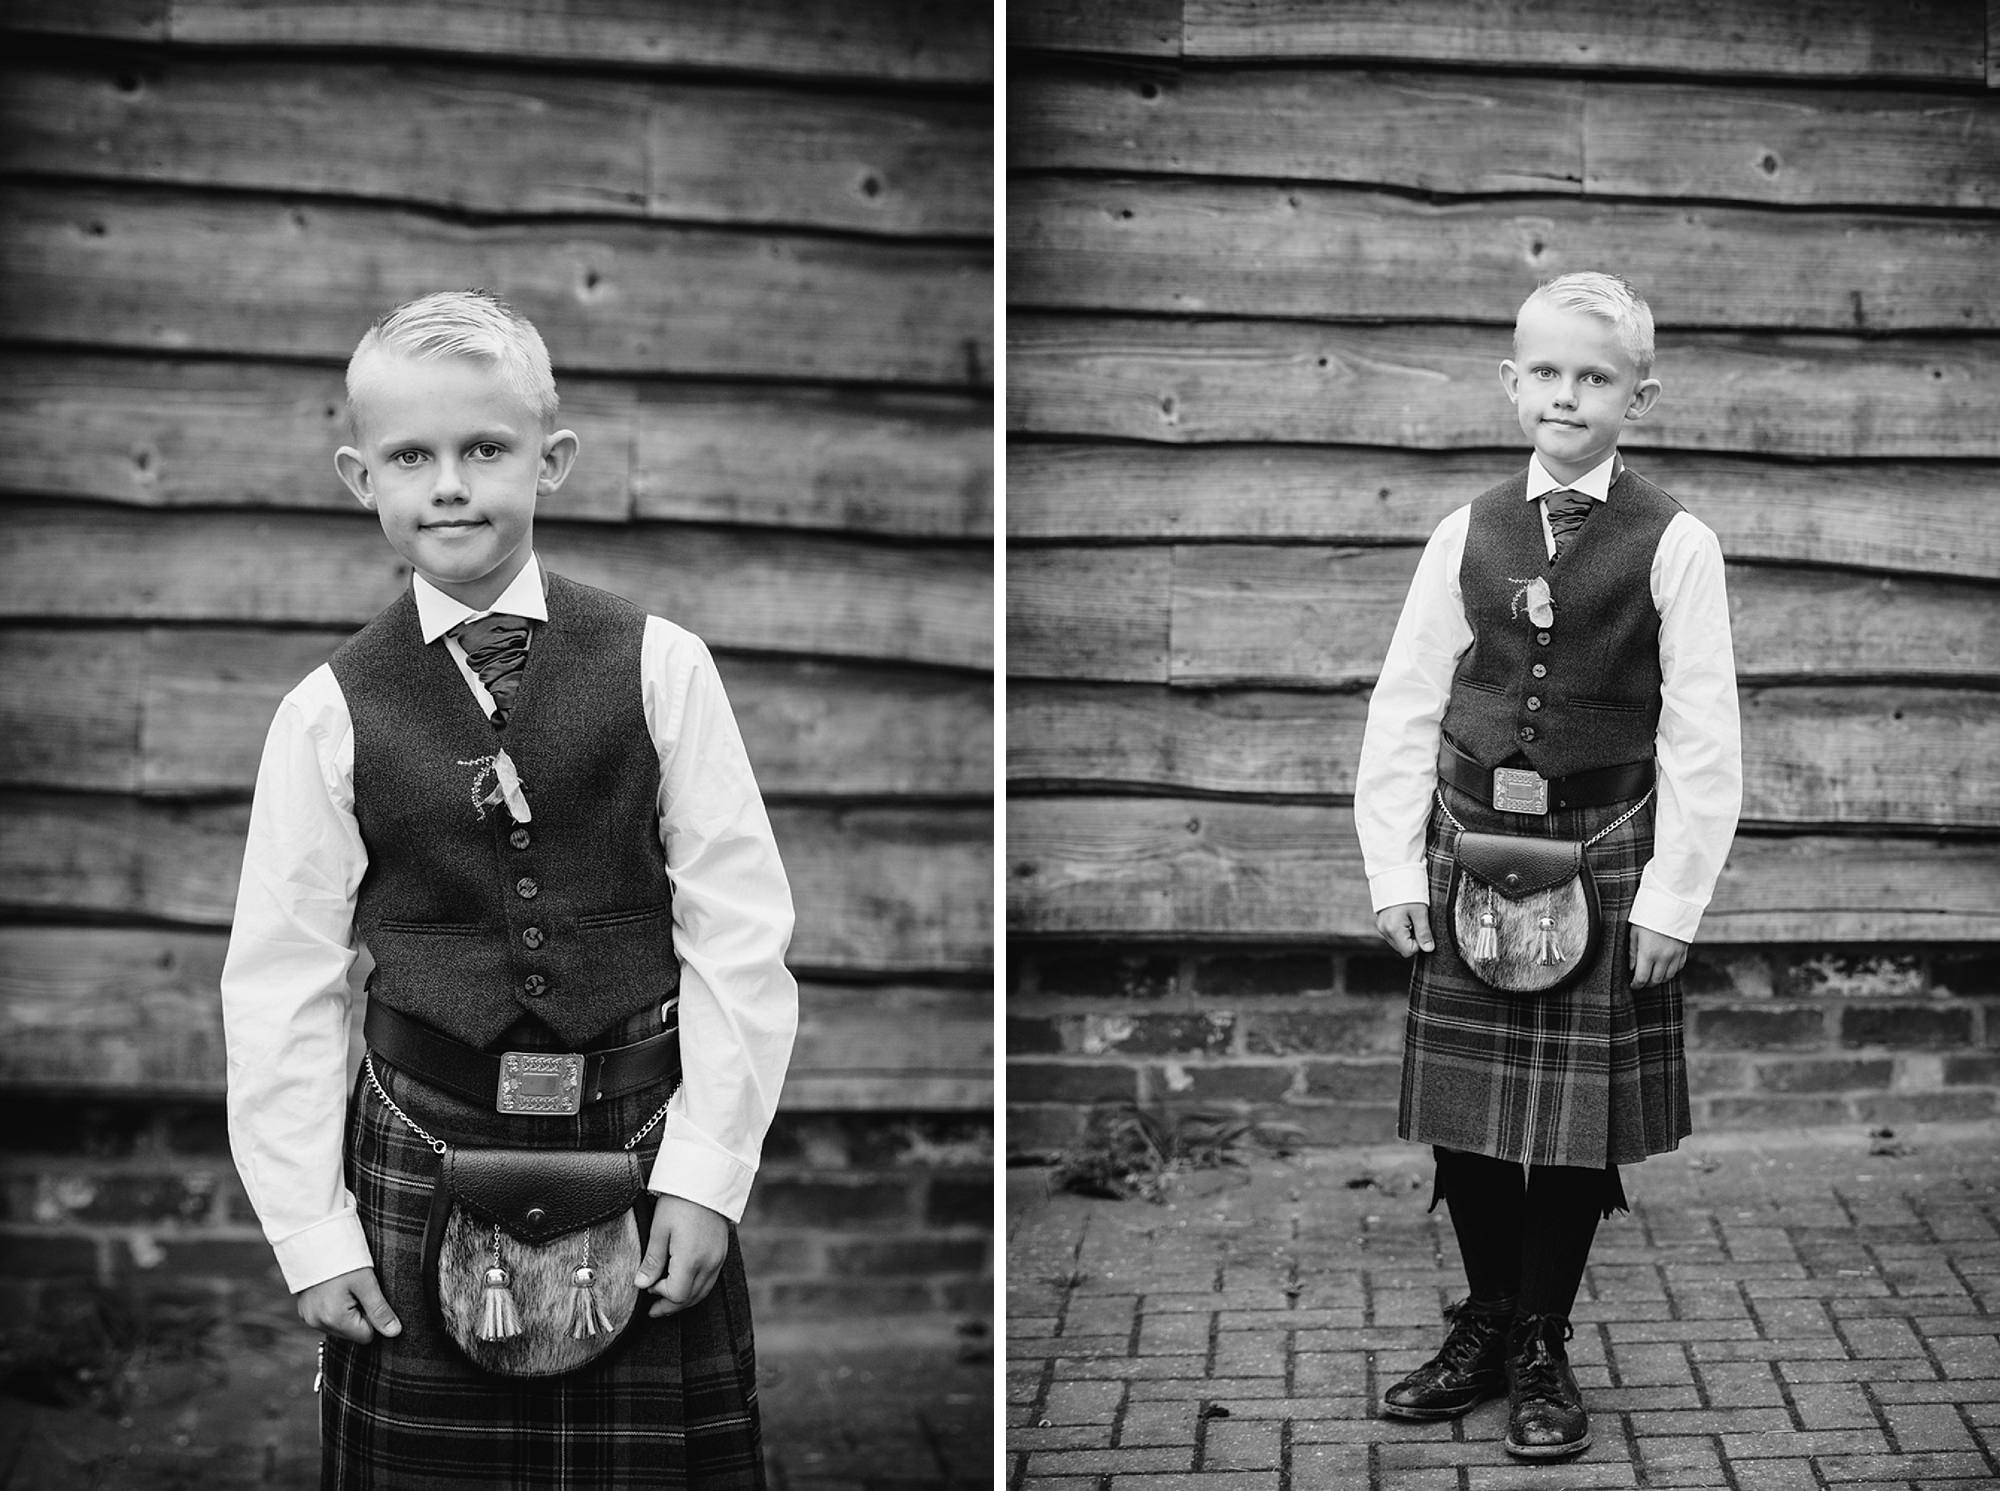 outdoor humanist wedding photography portrait of young lad in scottish attire